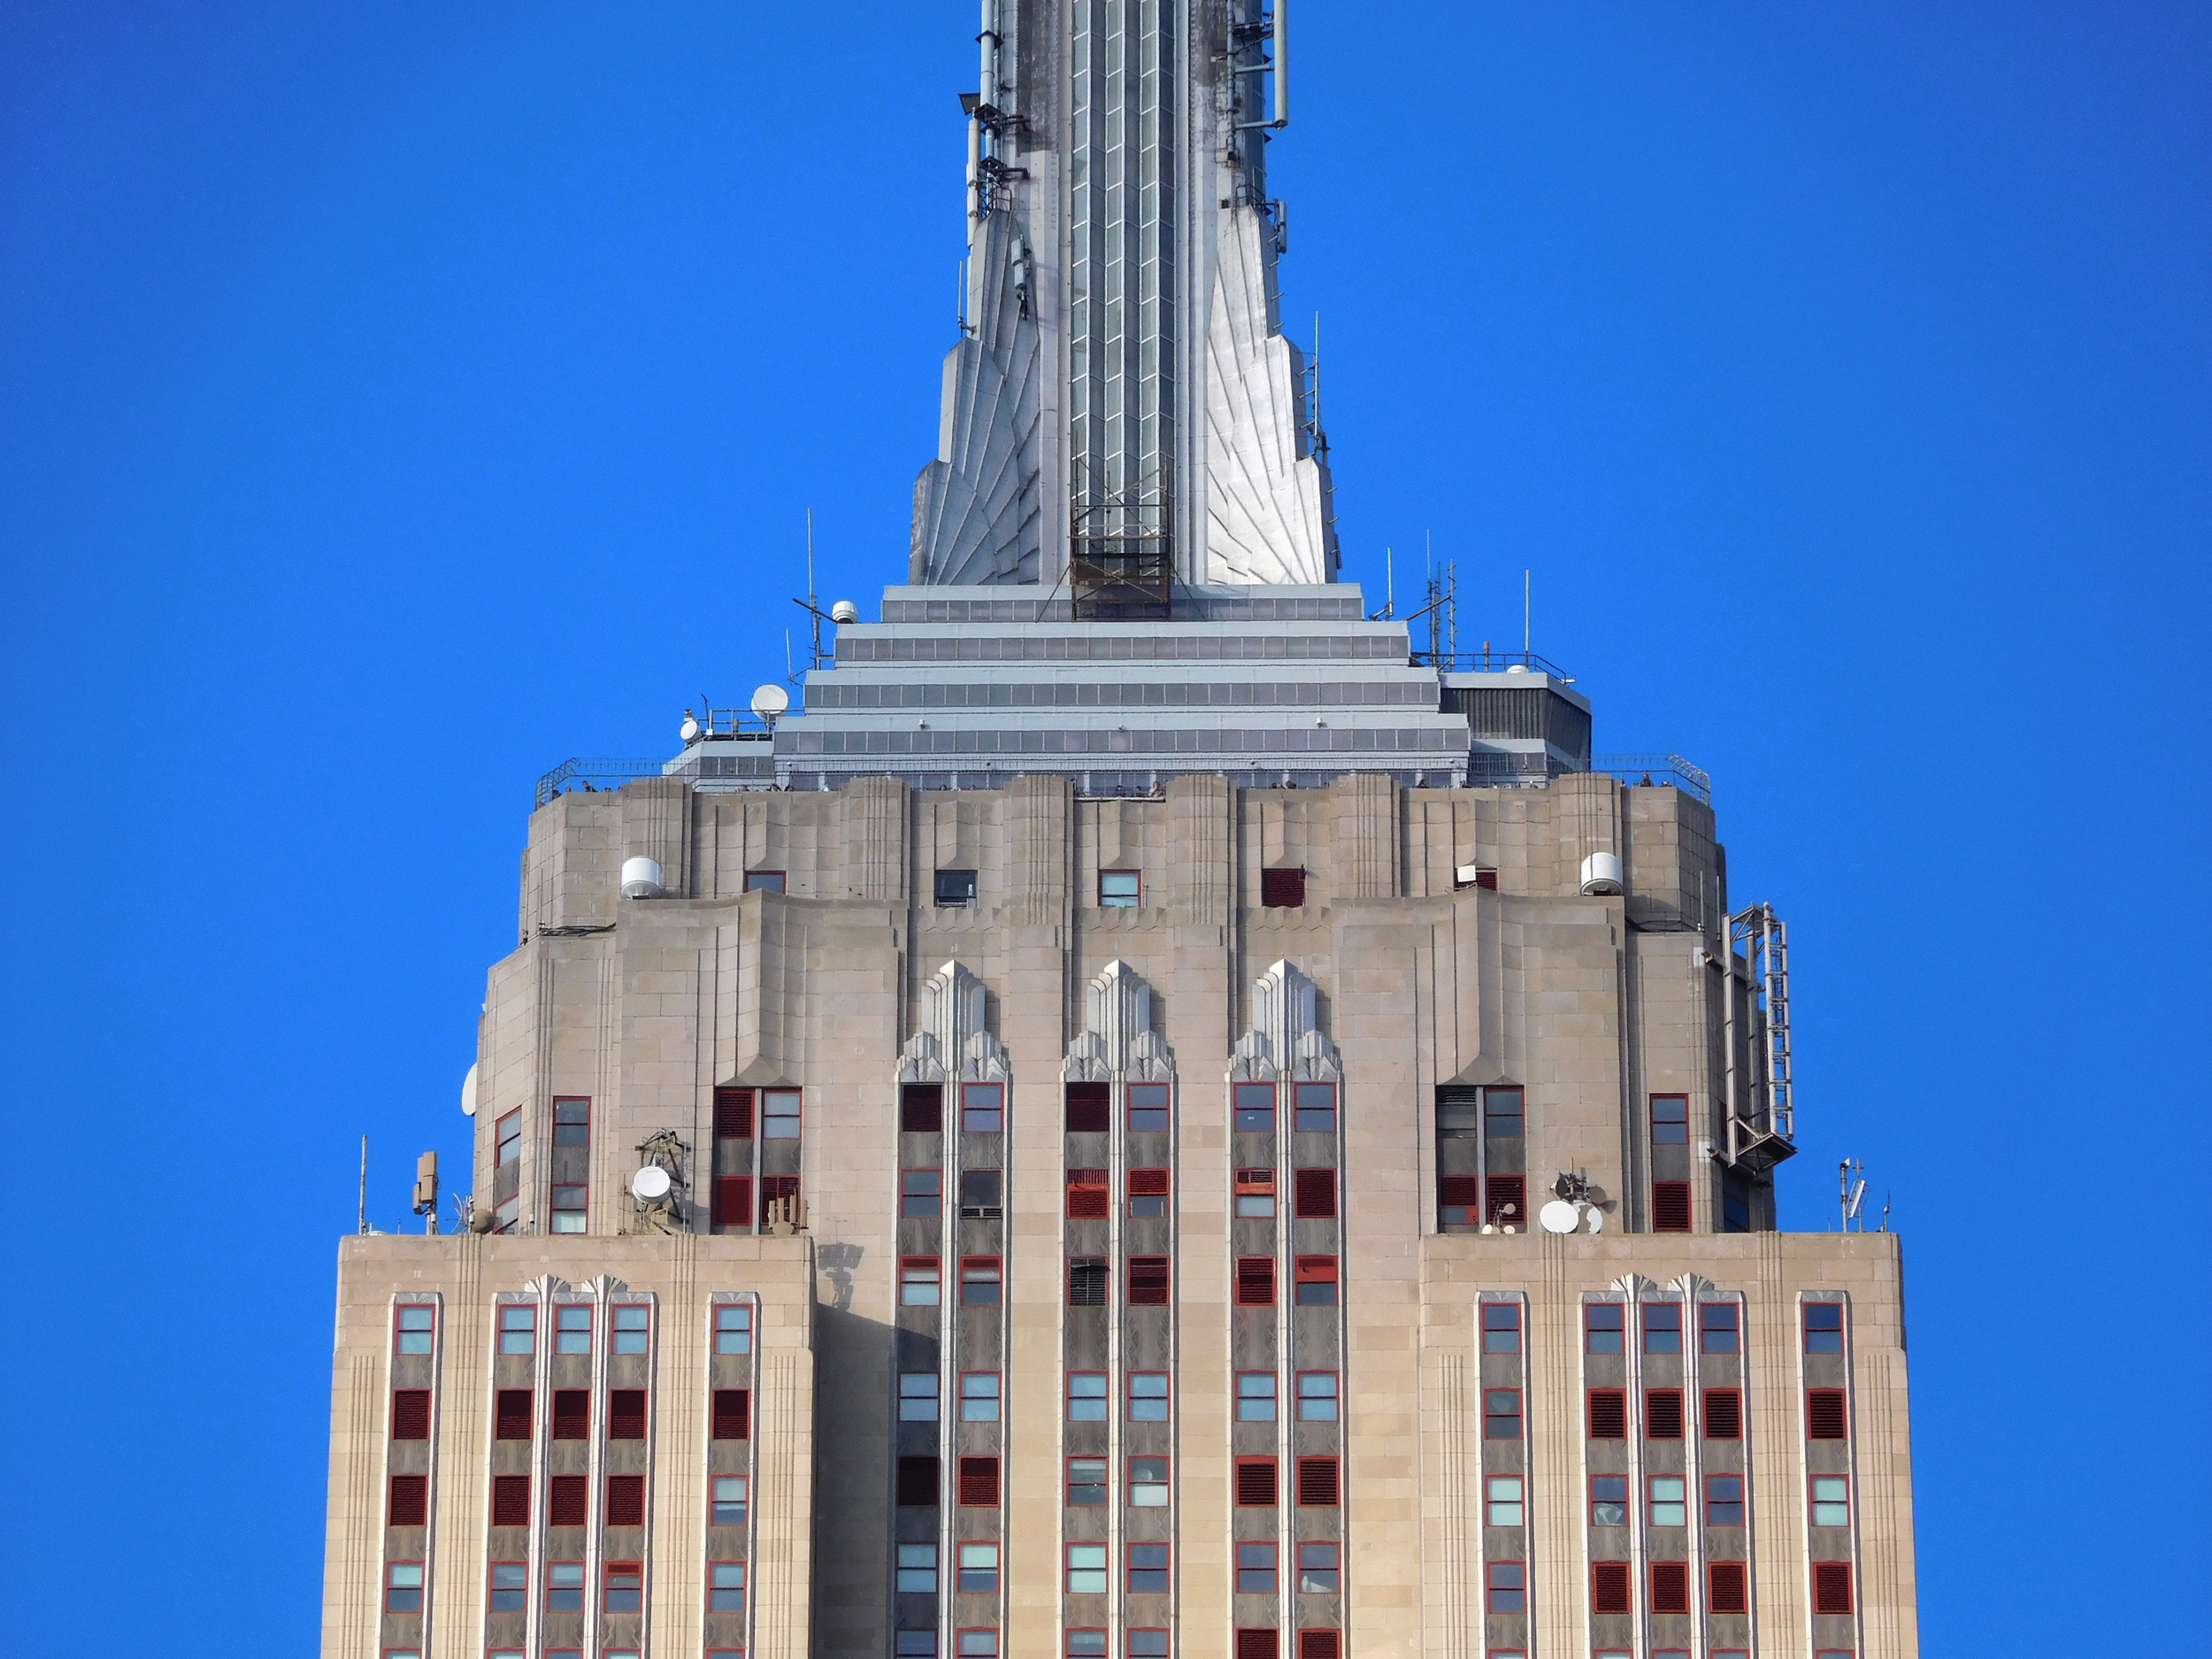 Empire State Building, 350 5th Ave by Shreve, Lamb & Harmon – 1931